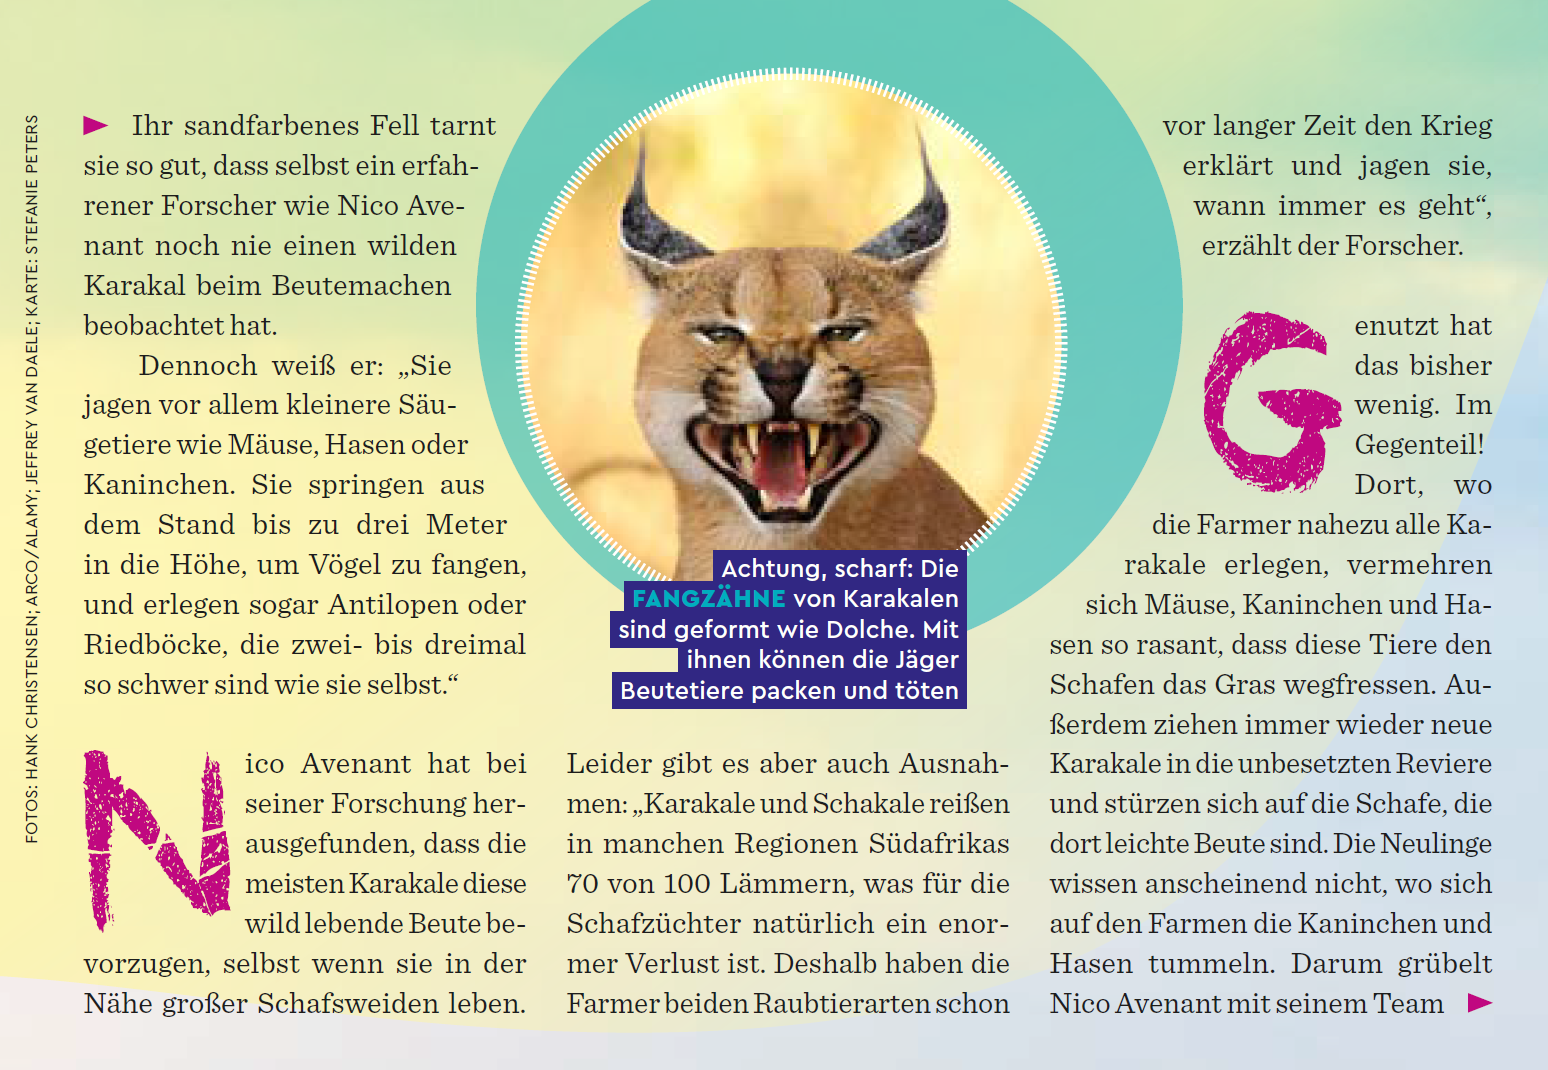 Excerpt from Feb 2018 issue of Geolino Magazine of article about the African caracal.